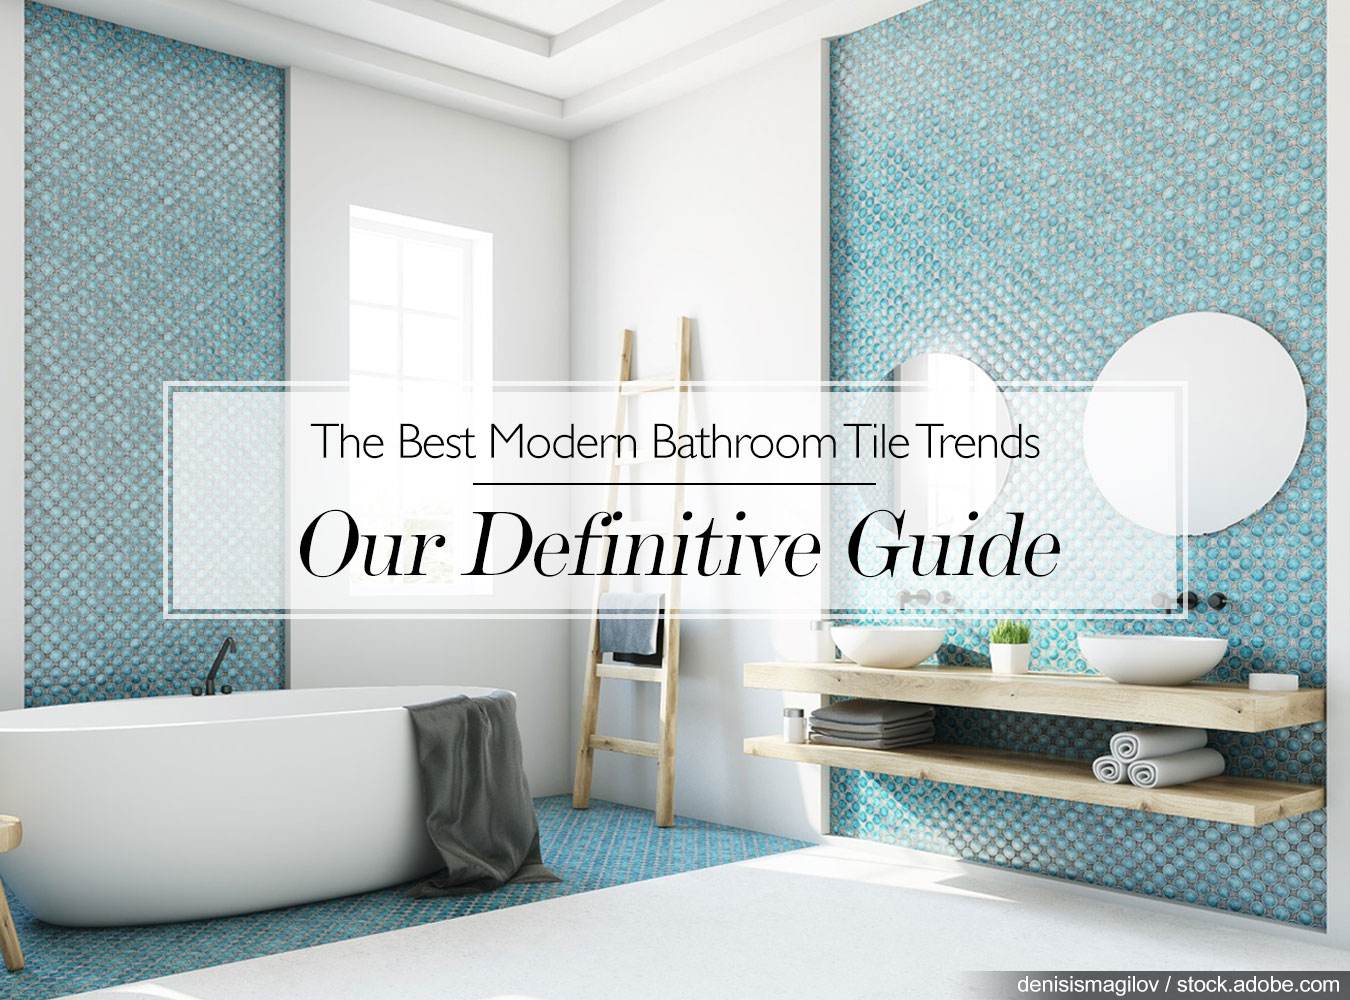 Washroom Tiles The Best Modern Bathroom Tile Trends Our Definitive Guide